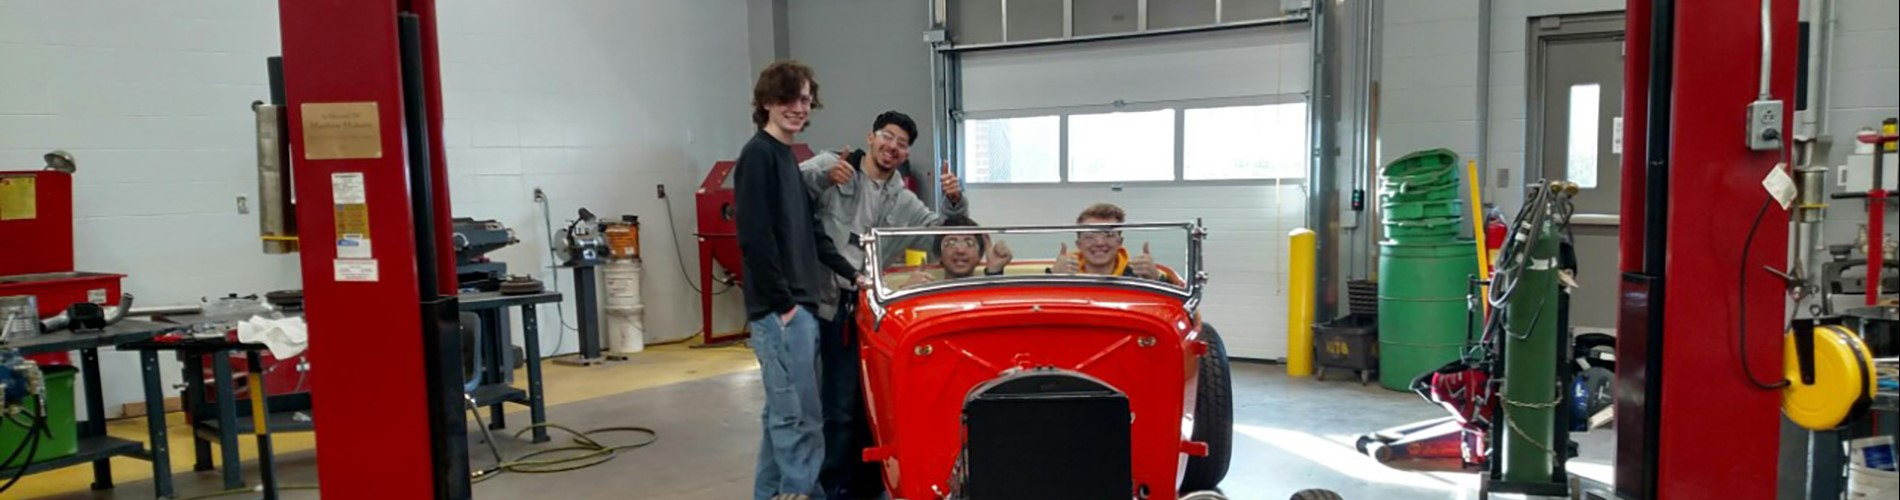 Automotive students in hot rod car